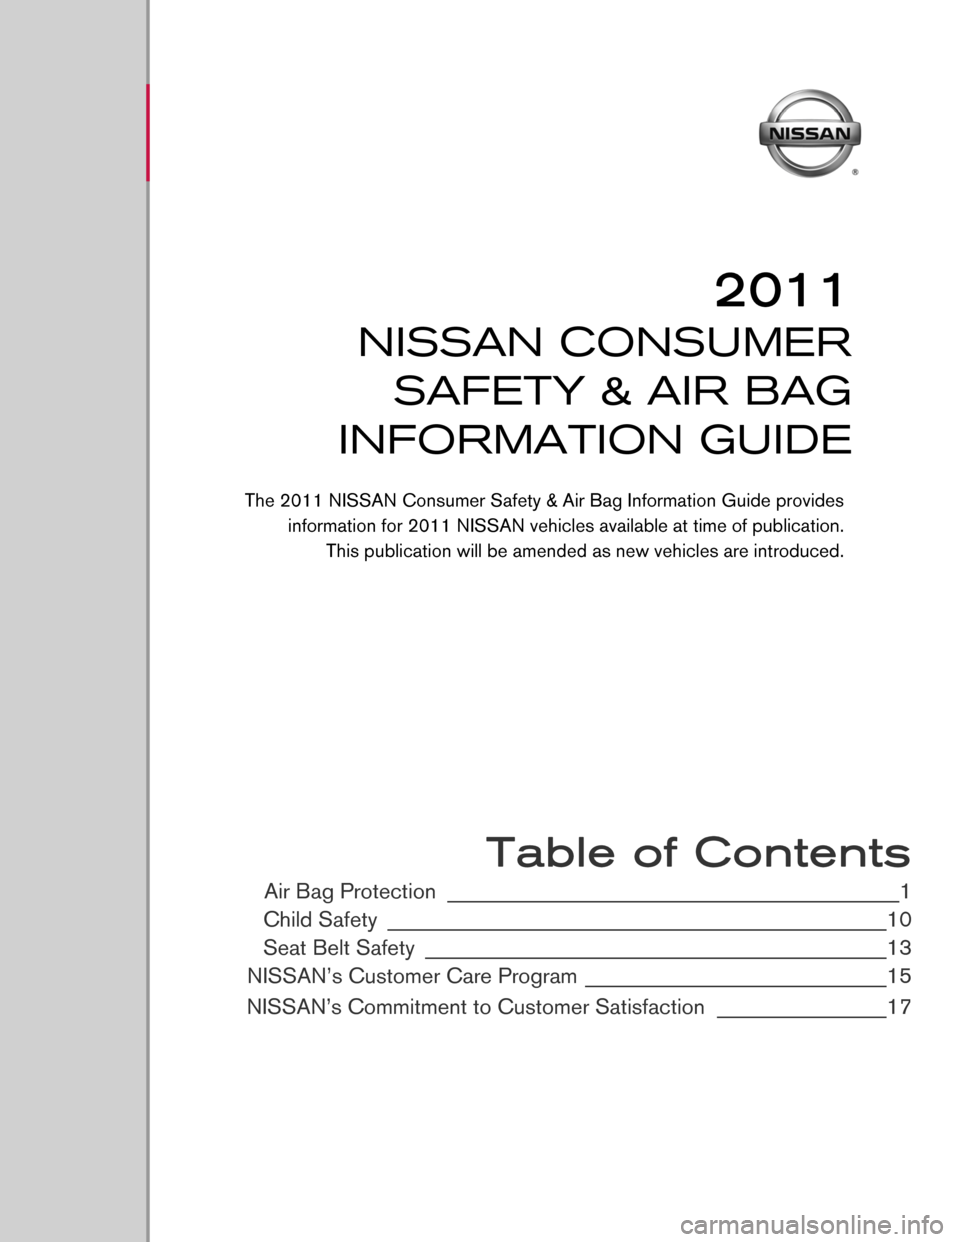 NISSAN ROGUE 2011 1.G Consumer Safety Air Bag Information Guide, Page 1